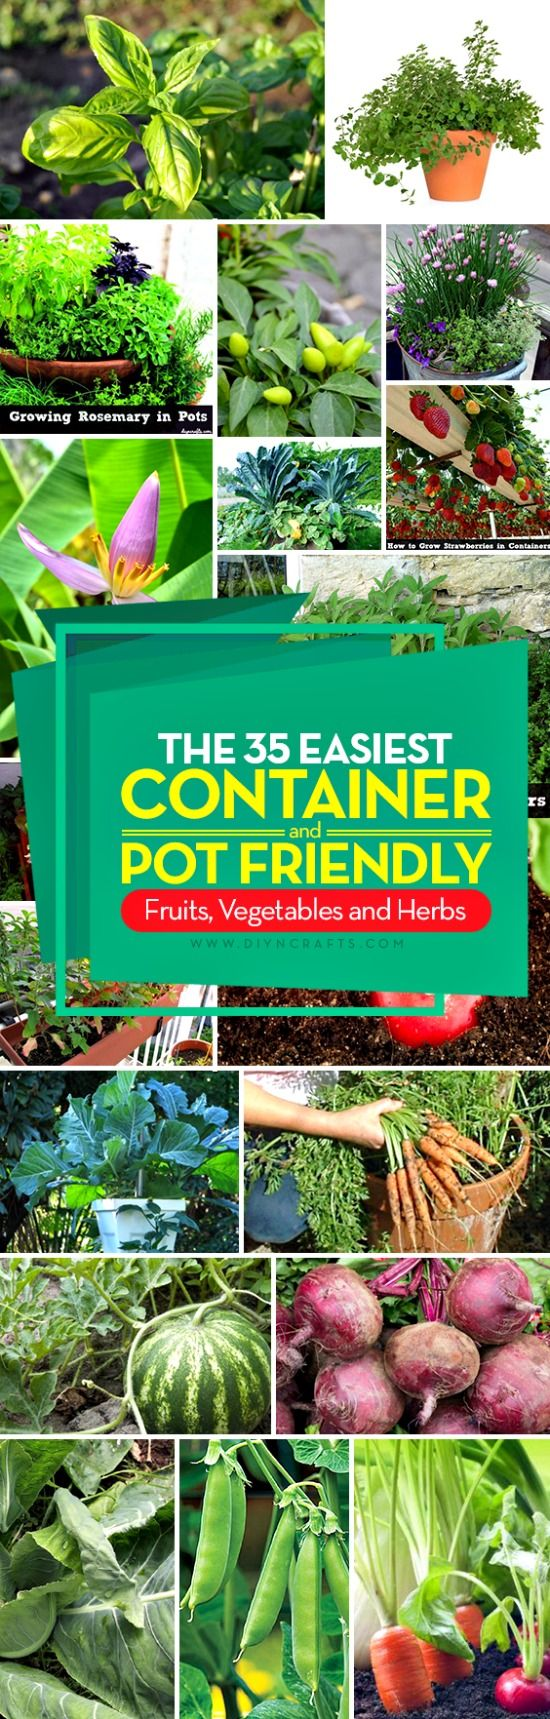 the 35 easiest container and pot friendly fruits vegetables and herbs diy container flowersgarden design ideasgarden